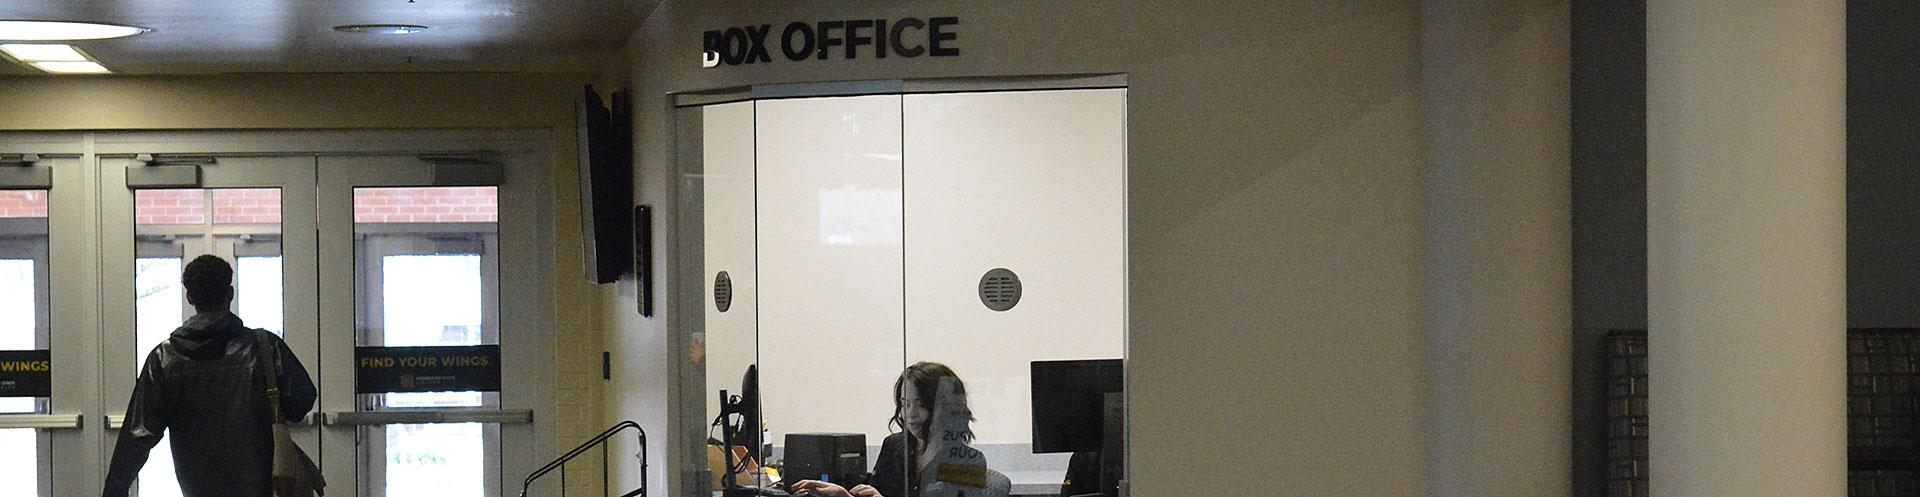 New Box Office for KSU Dance Theater